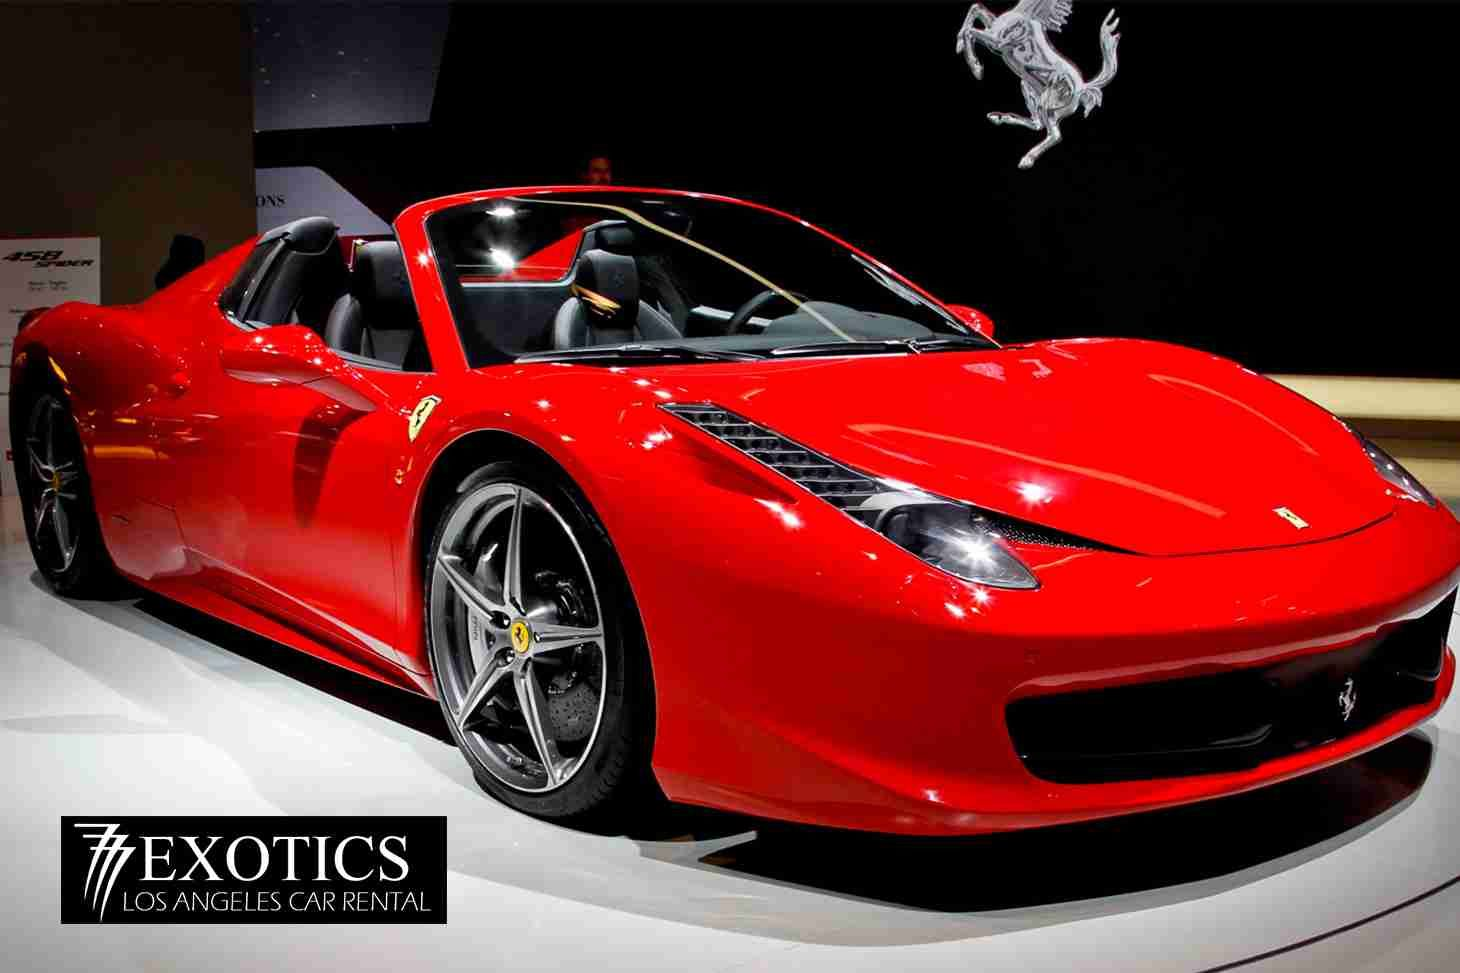 Ferrari 458 Italia Spider Rentals Los Angeles Cheap Price